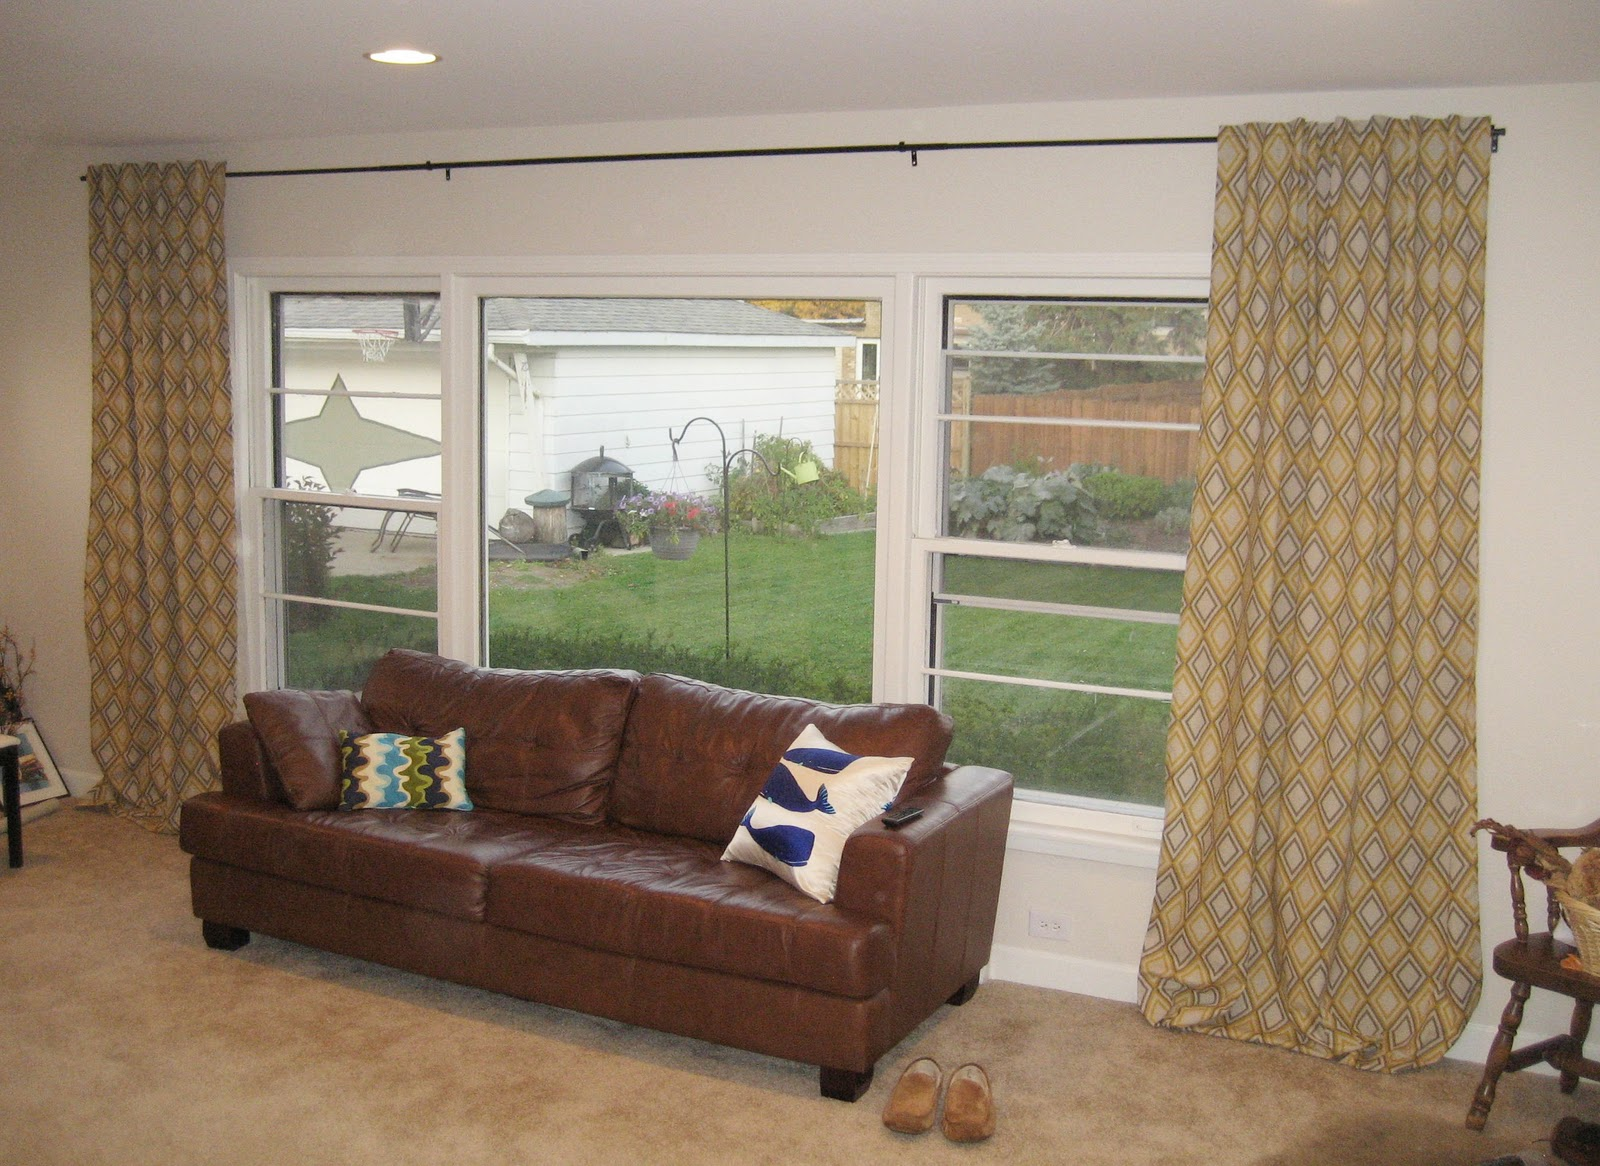 Extra Long Curtain Rods With Brown Leather Sofa Plus Beige Area Rug For Stunning Family Room